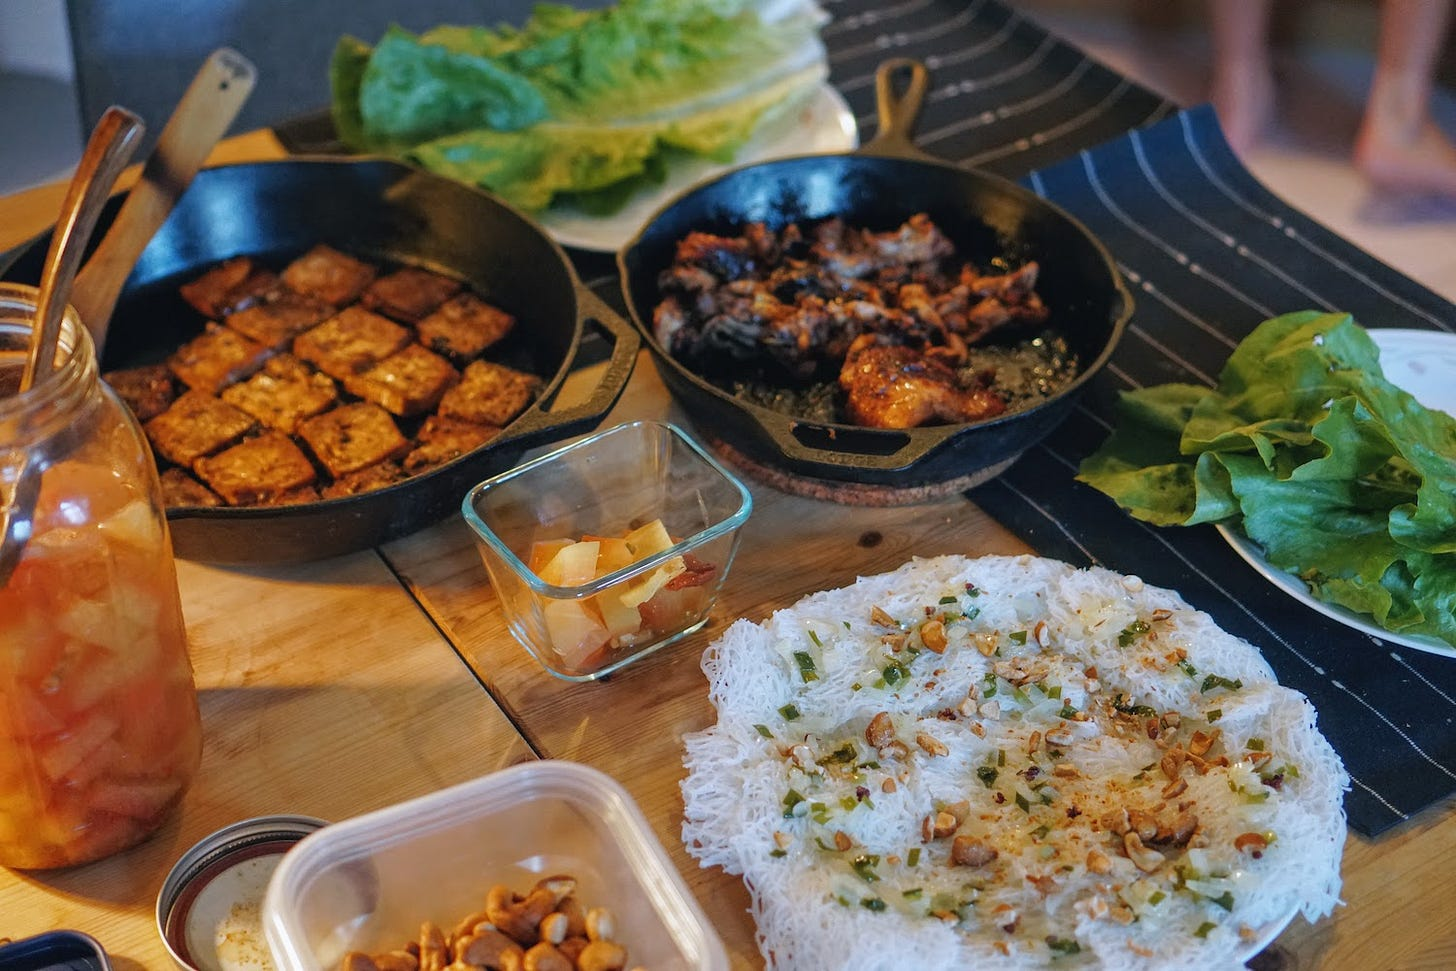 A table filled with plates of vermicelli, tofu, chicken, lettuce and pickles